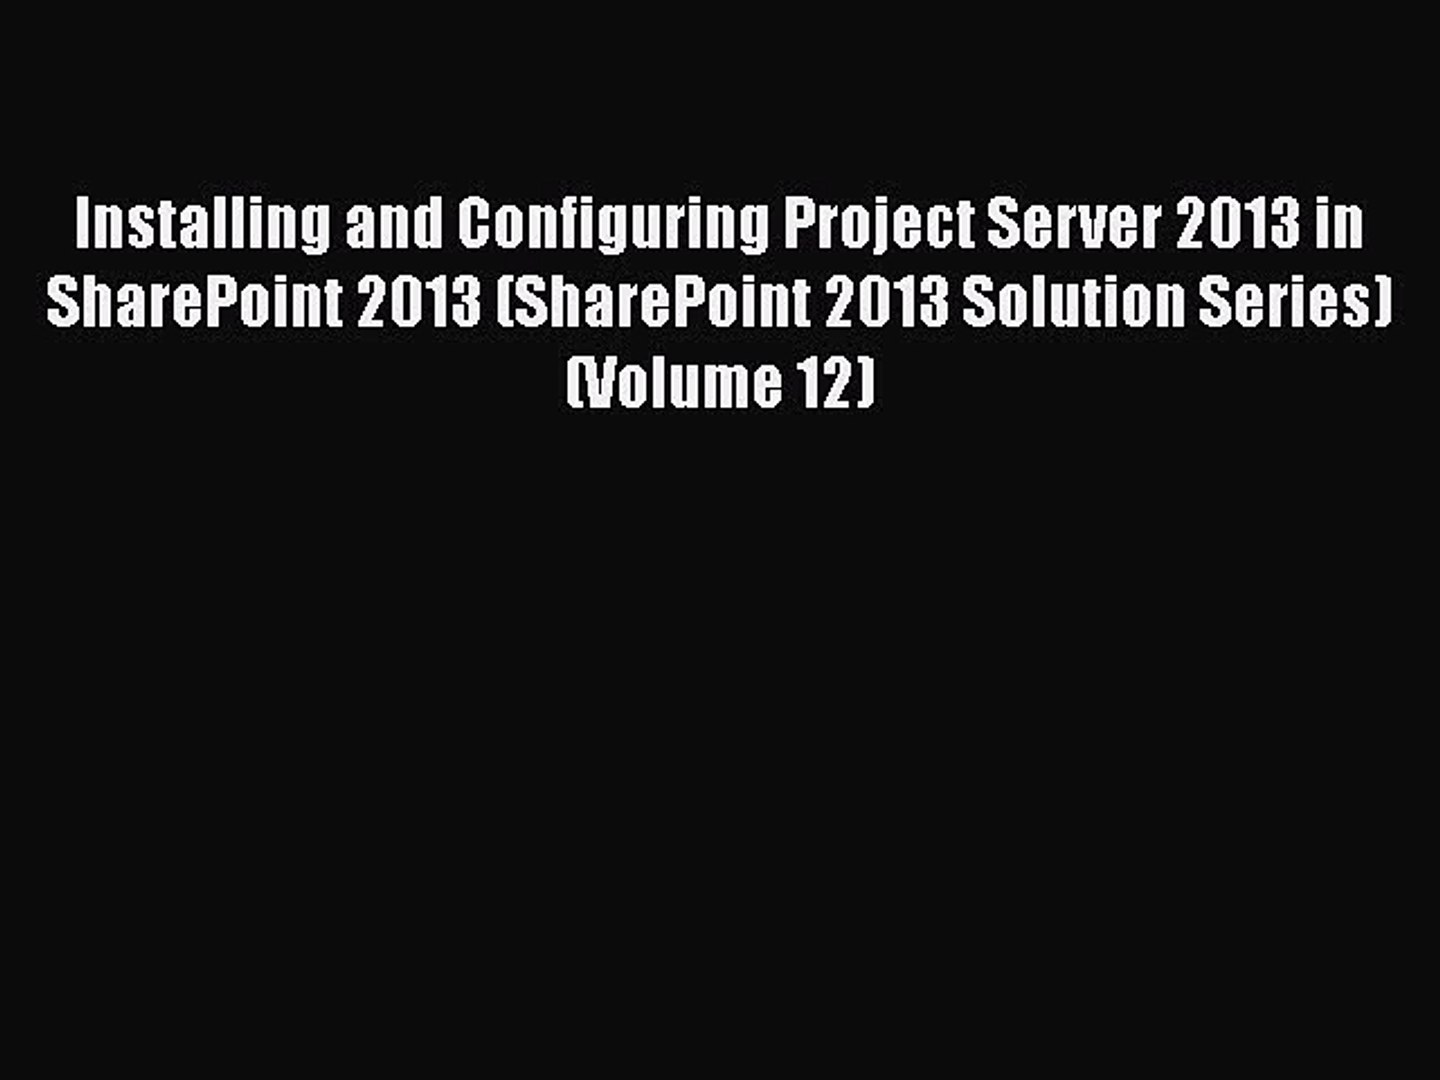 [PDF] Installing and Configuring Project Server 2013 in SharePoint 2013 (SharePoint 2013 Solution